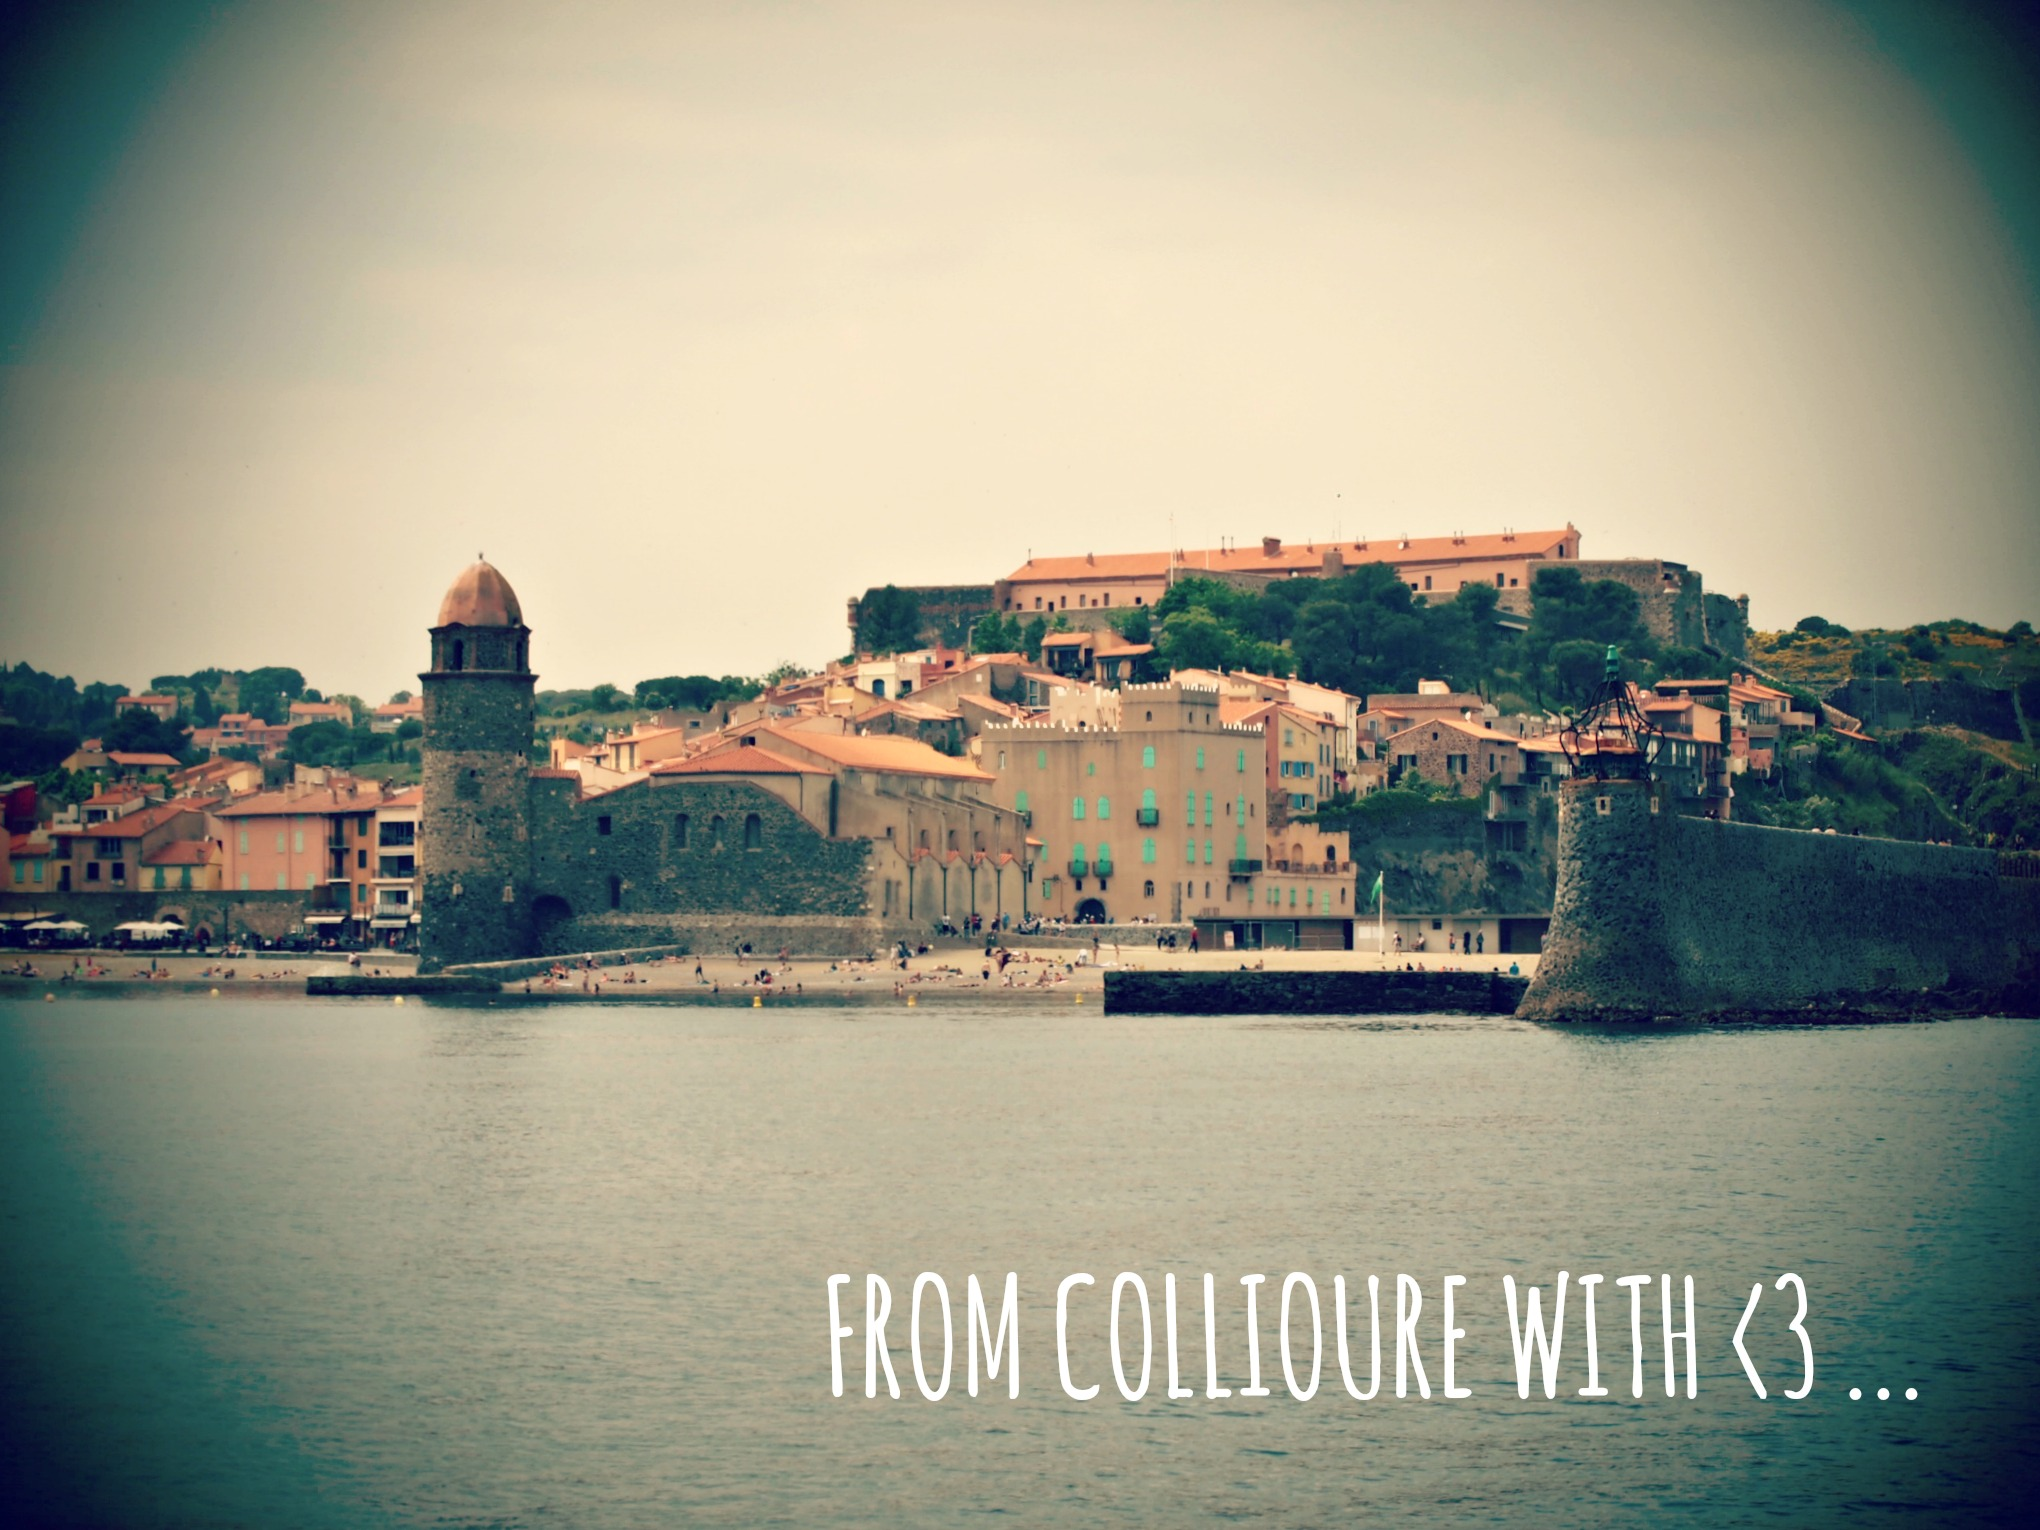 collioure blog lifestyle marseille